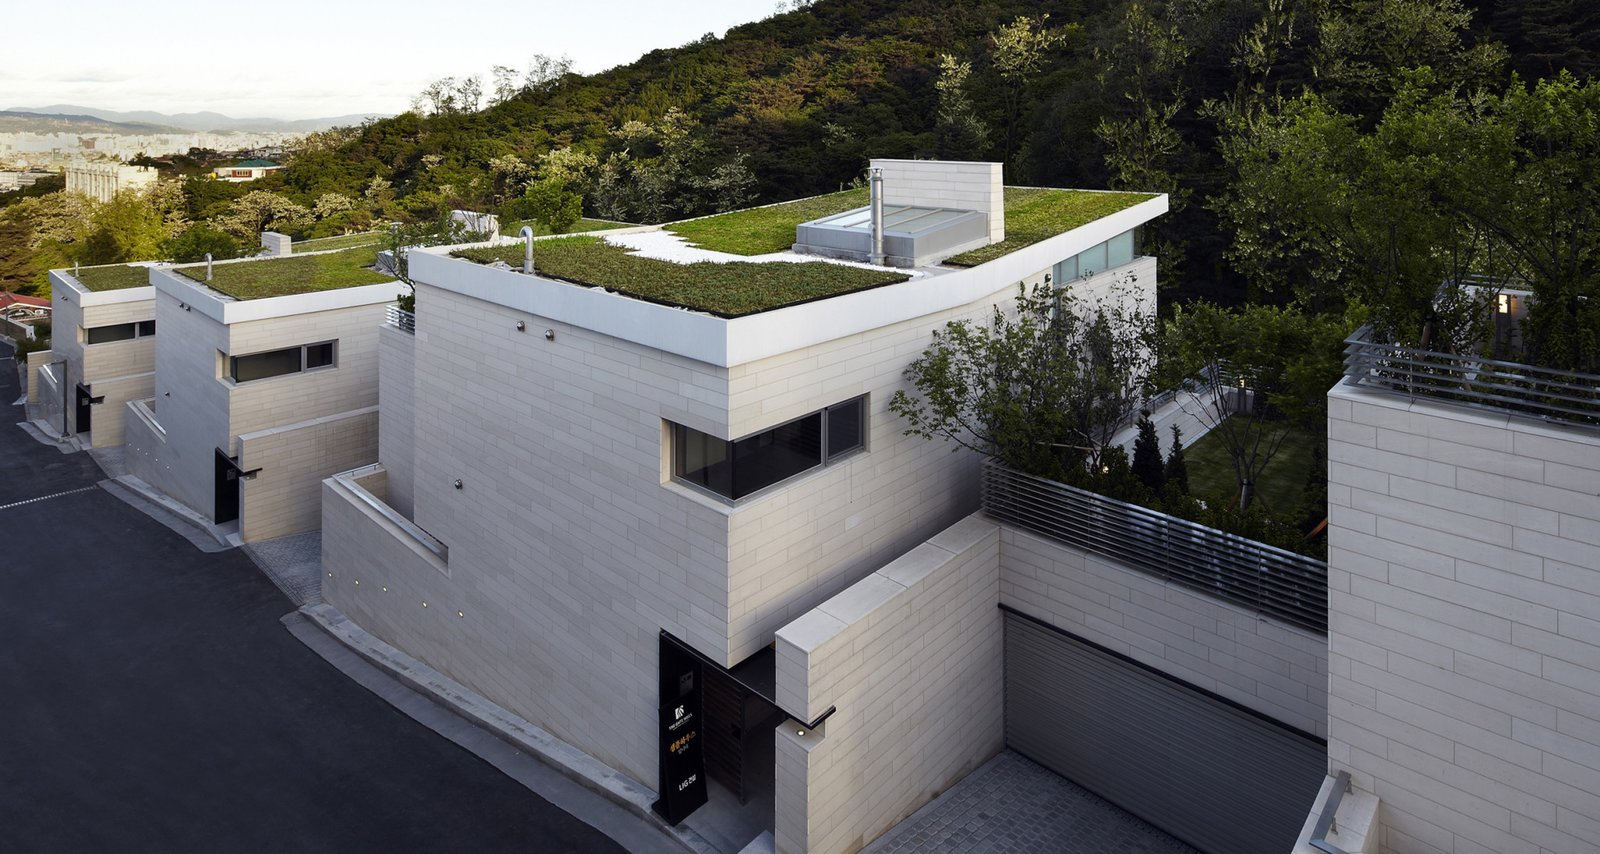 #SeongbukdongResidence #modern #midcentury #enclave #sustainable #L-shaped #exterior #outside #outdoors #structure #rooftop #landscape #green #garage #garden #street #Seoul #JoelSandersArchitects  Seongbukdong Residence by Joel Sanders Architect